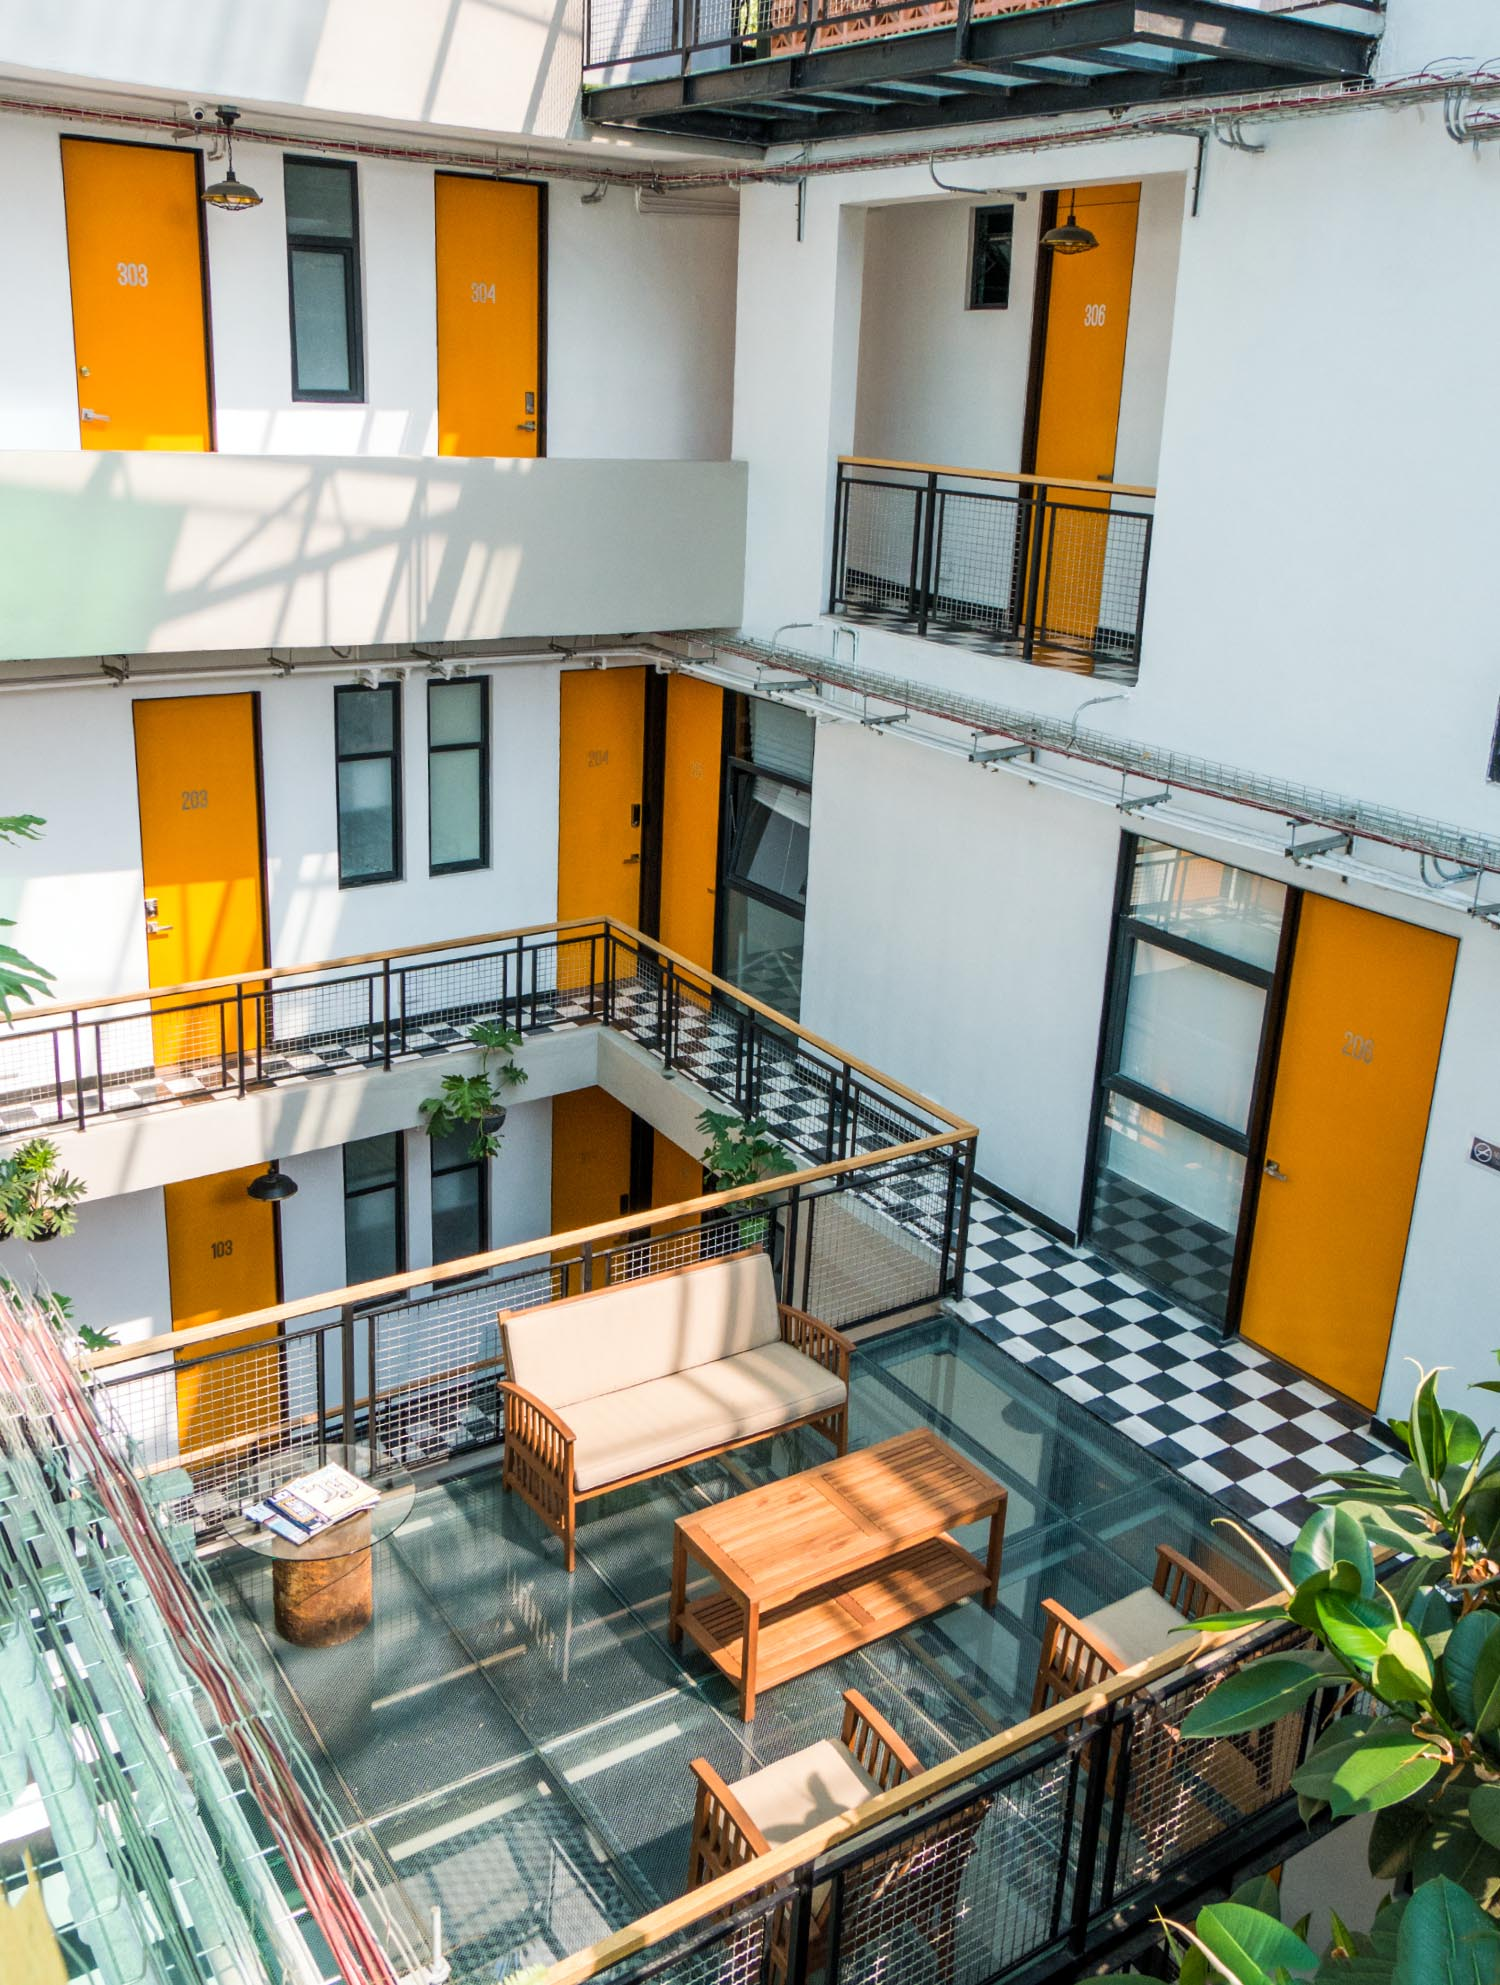 Our Lucky $300 Apartment Rental in Mexico City - Feather and the